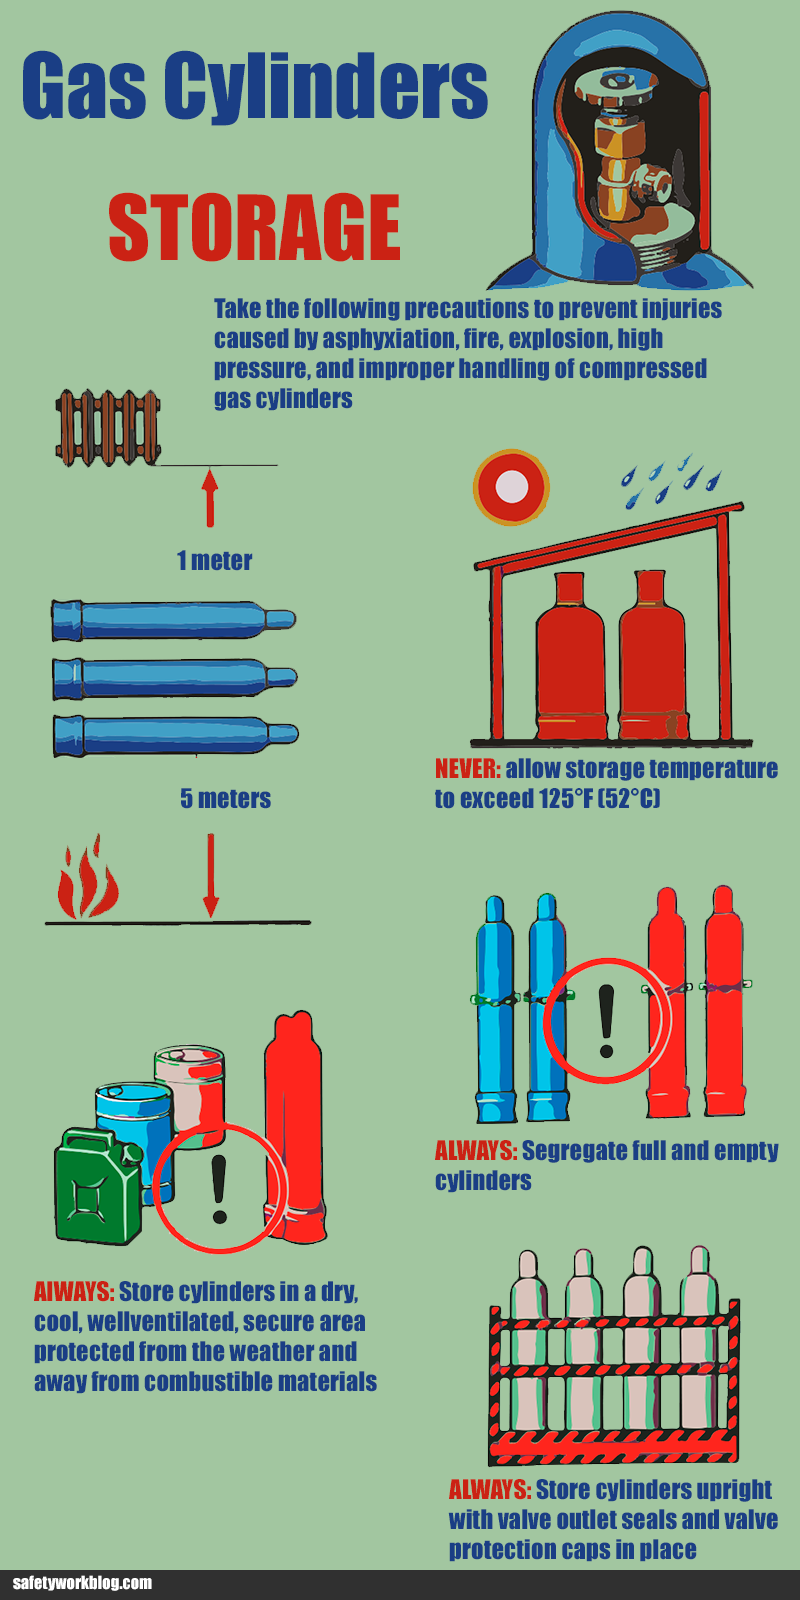 Gas Cylinders Storage Safety Health and safety poster